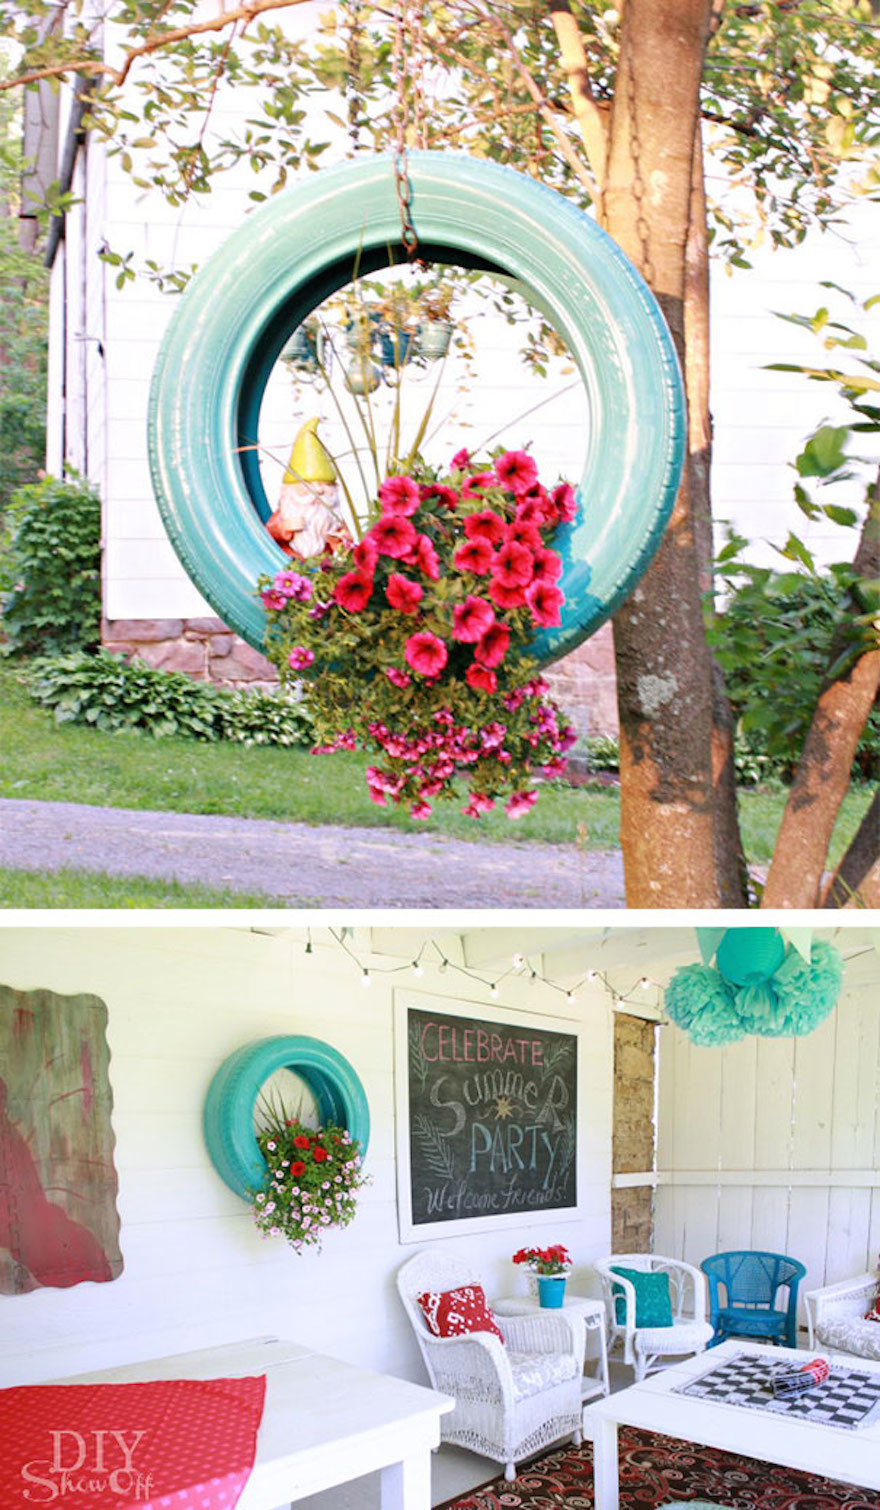 21 Genius Diy Ways To Reuse And Recycle Old Tires Do It